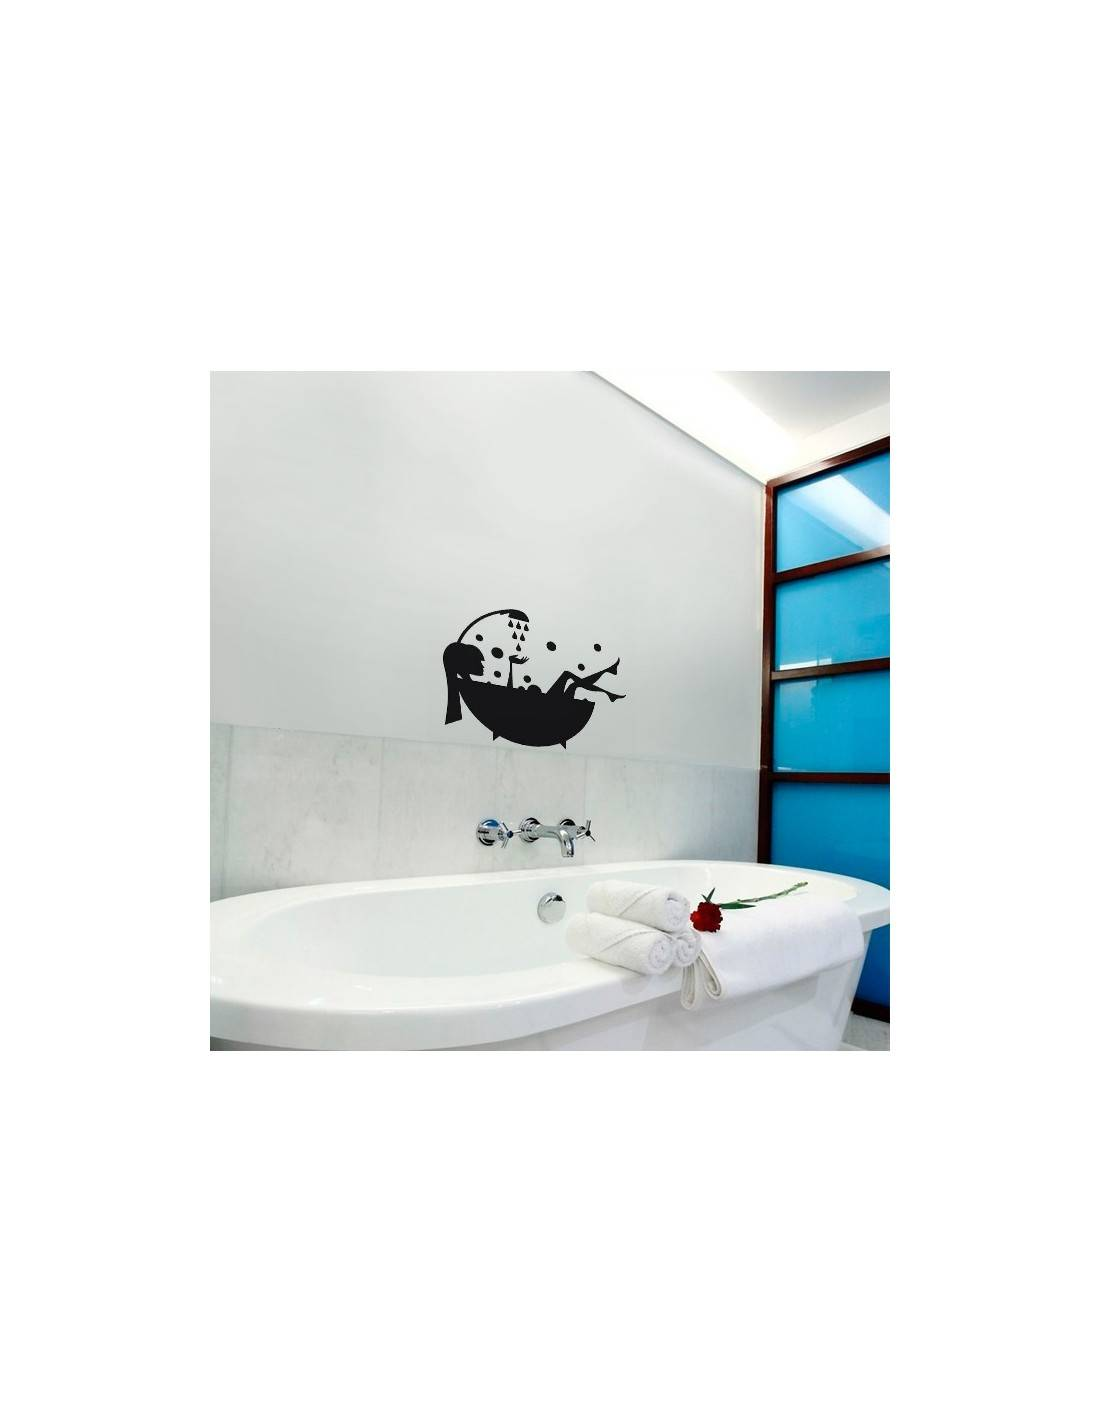 stickers d coration salle de bain stickers porte de salle de bain. Black Bedroom Furniture Sets. Home Design Ideas